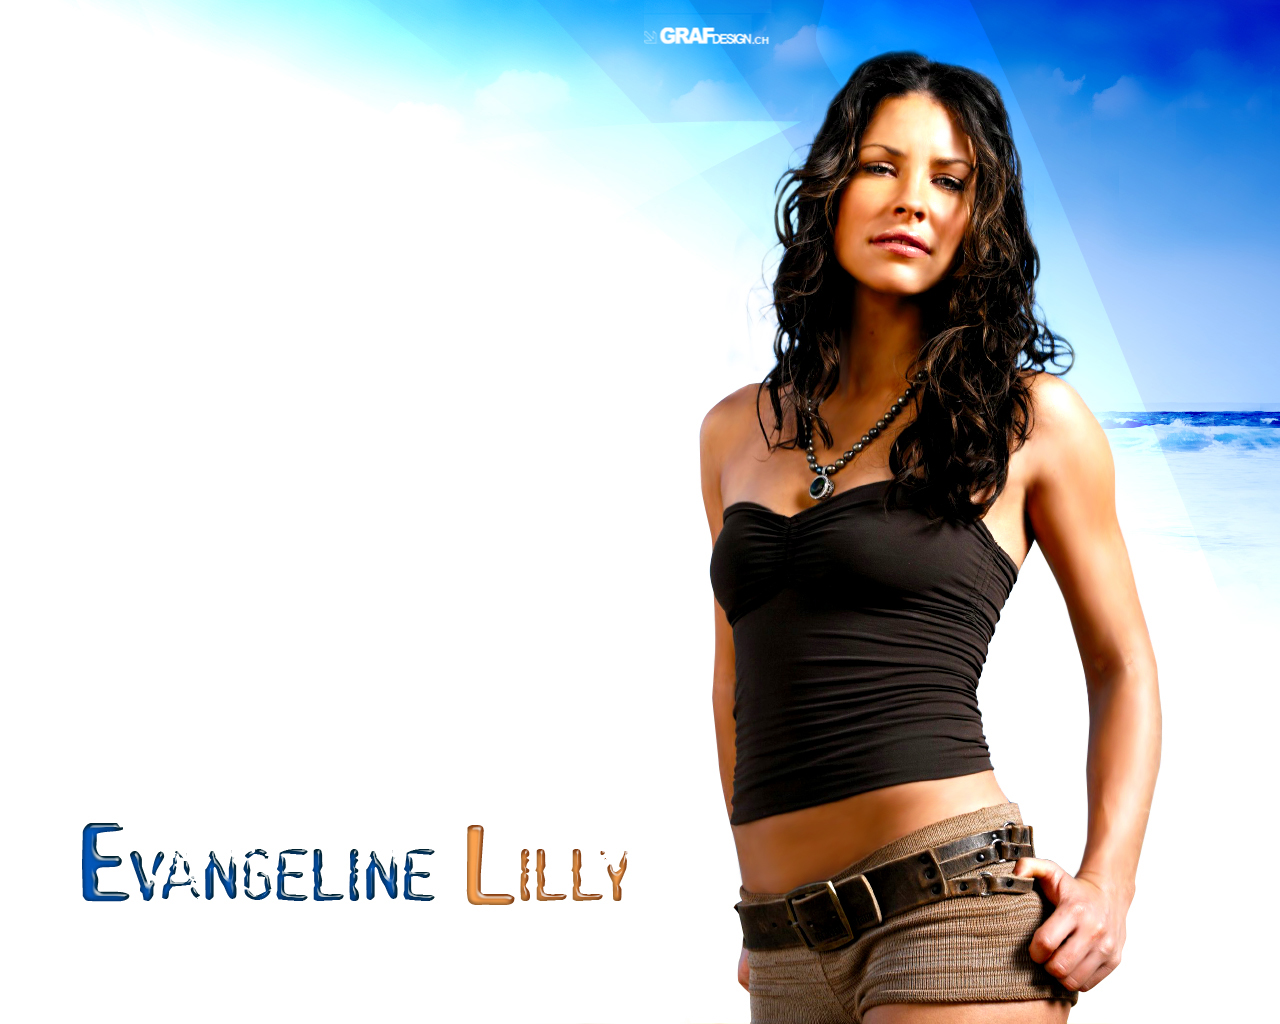 Evangeline lilly Wallpapers Photos images Evangeline lilly pictures 1280x1024